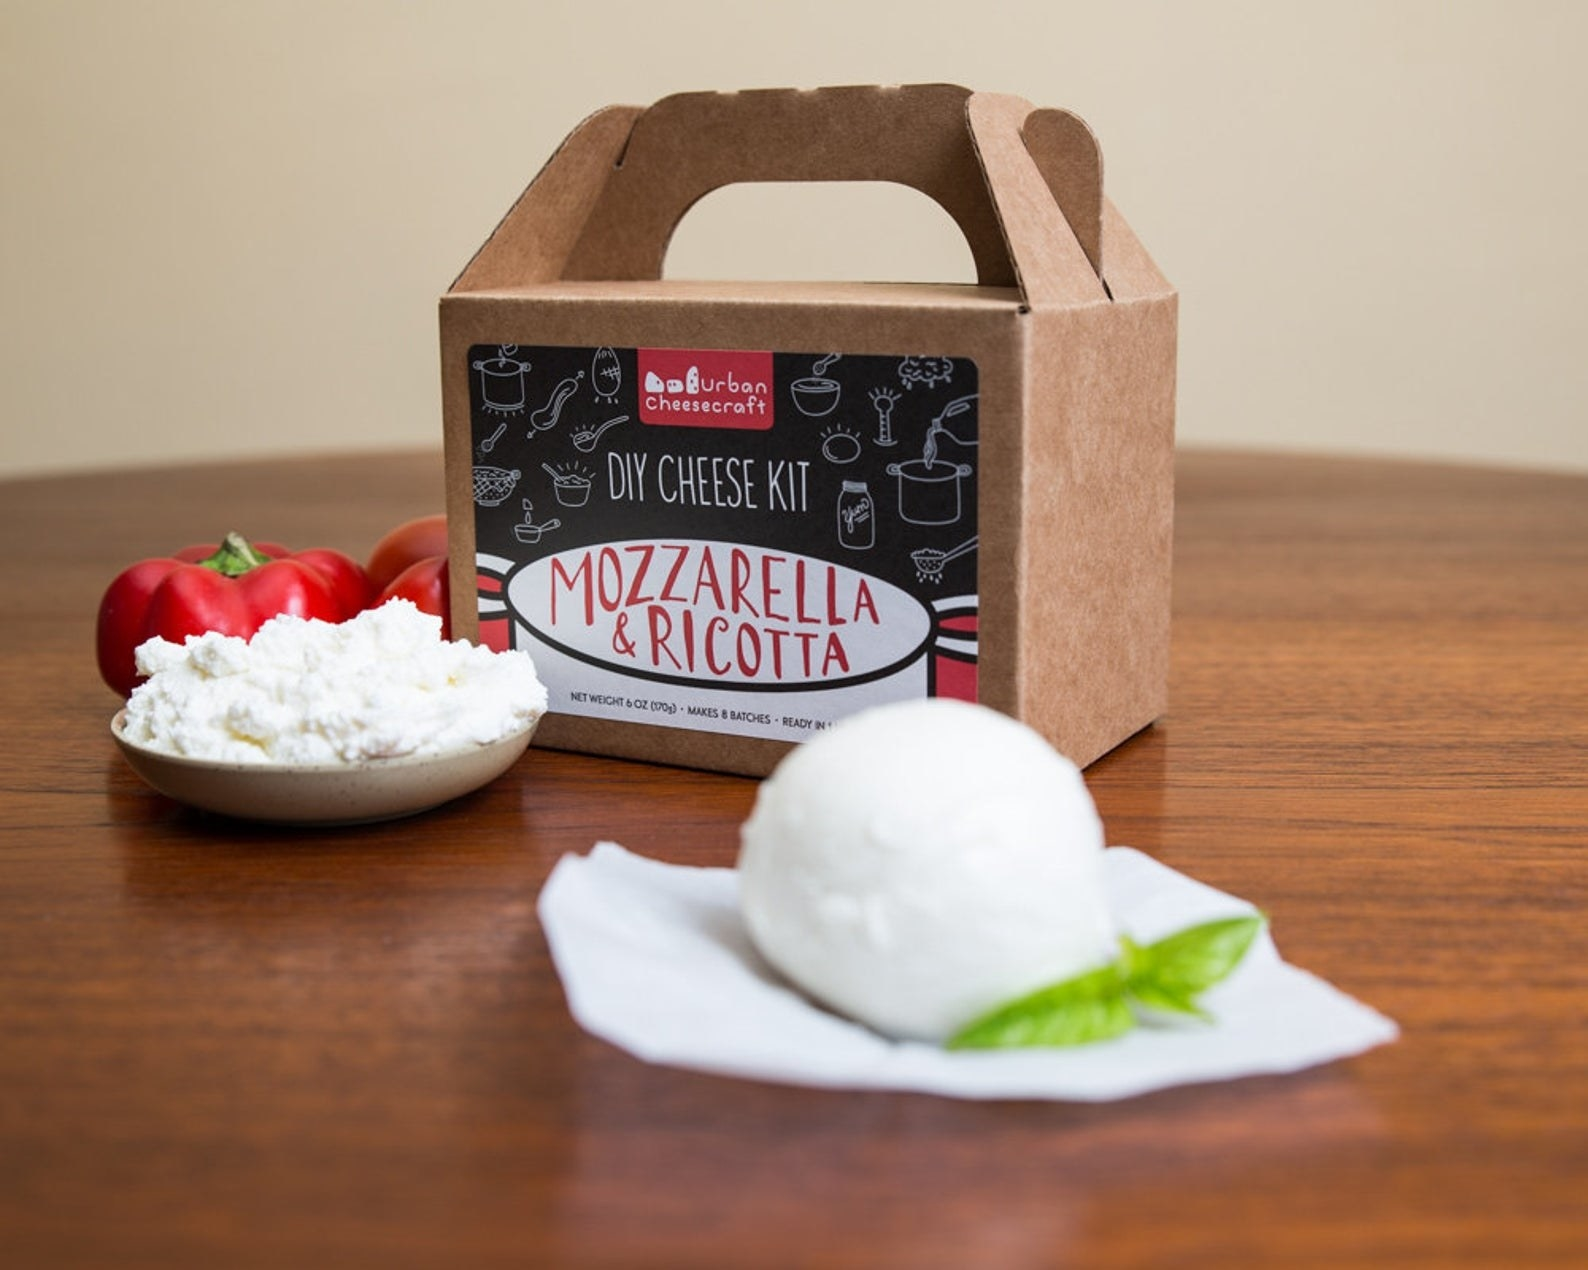 The kit with a ball of mozzarella and a plate of ricotta